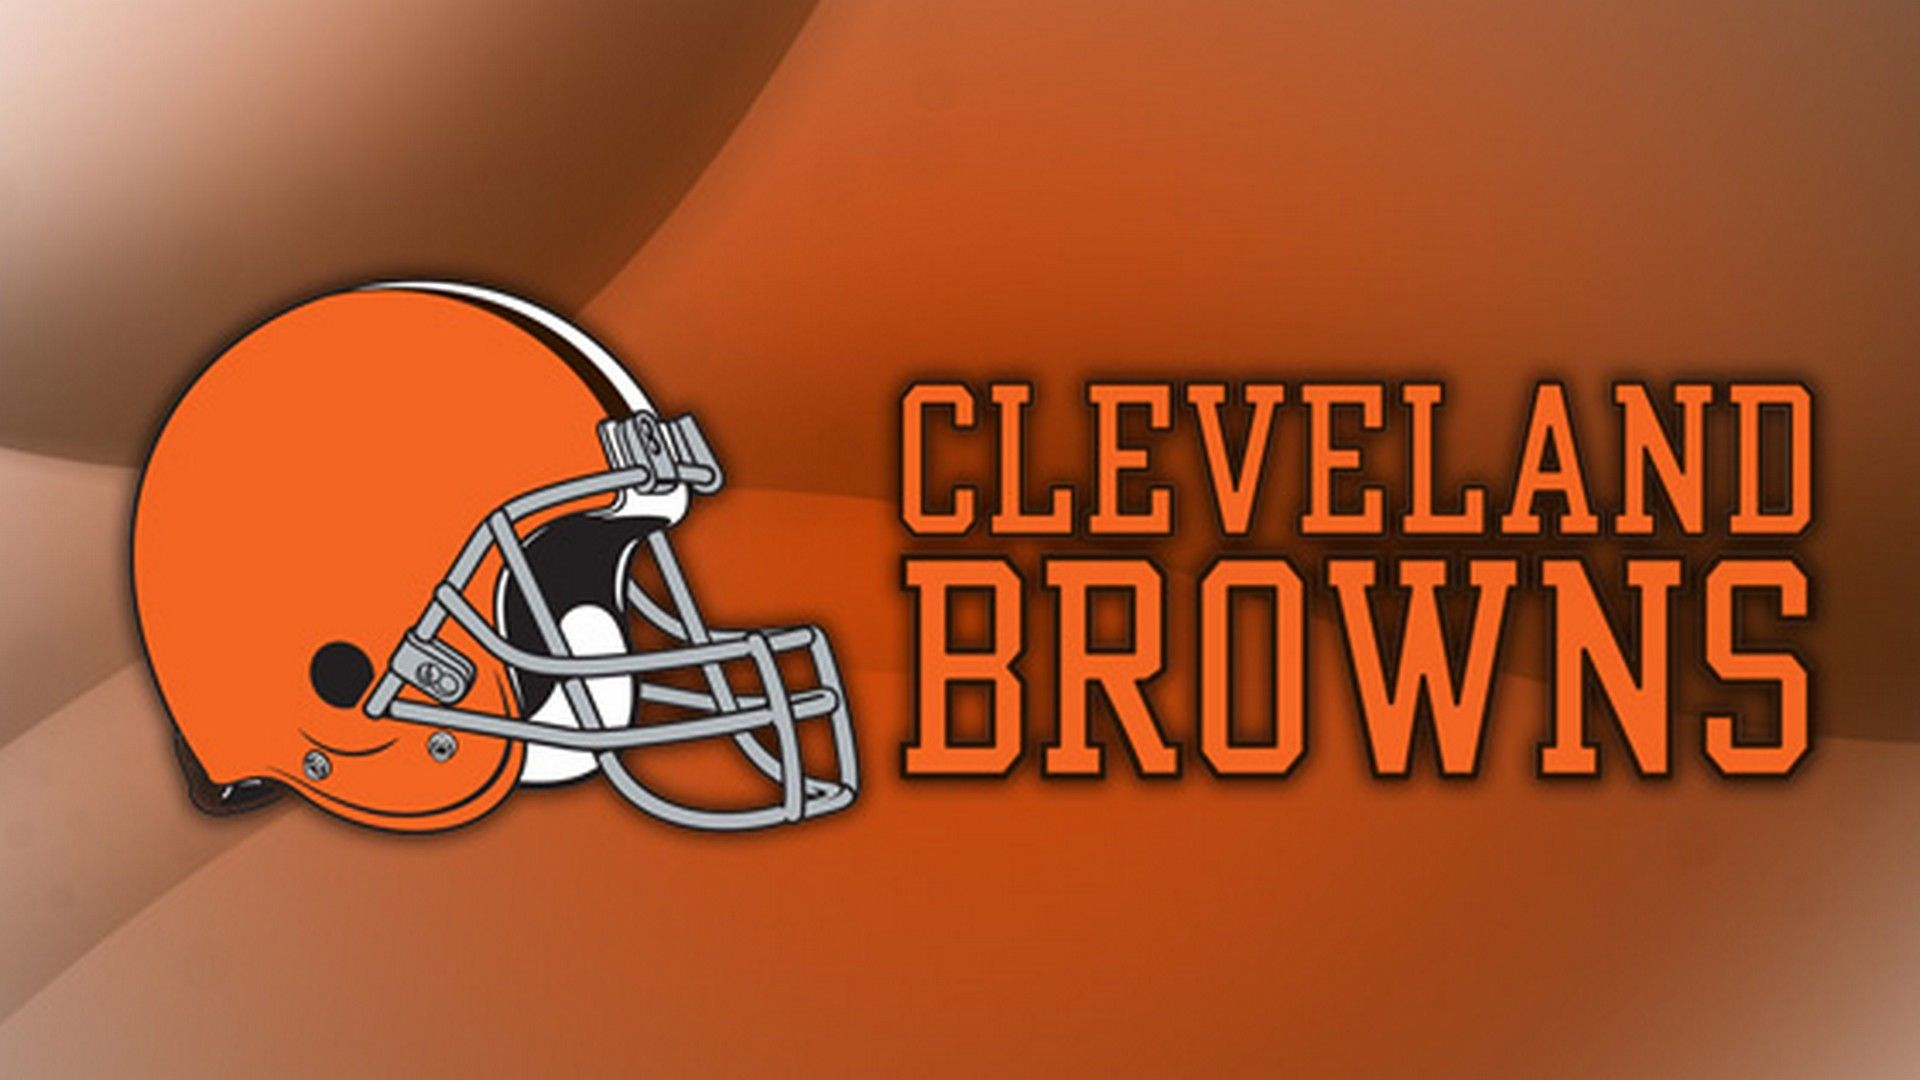 HD Backgrounds Cleveland Browns Cleveland browns